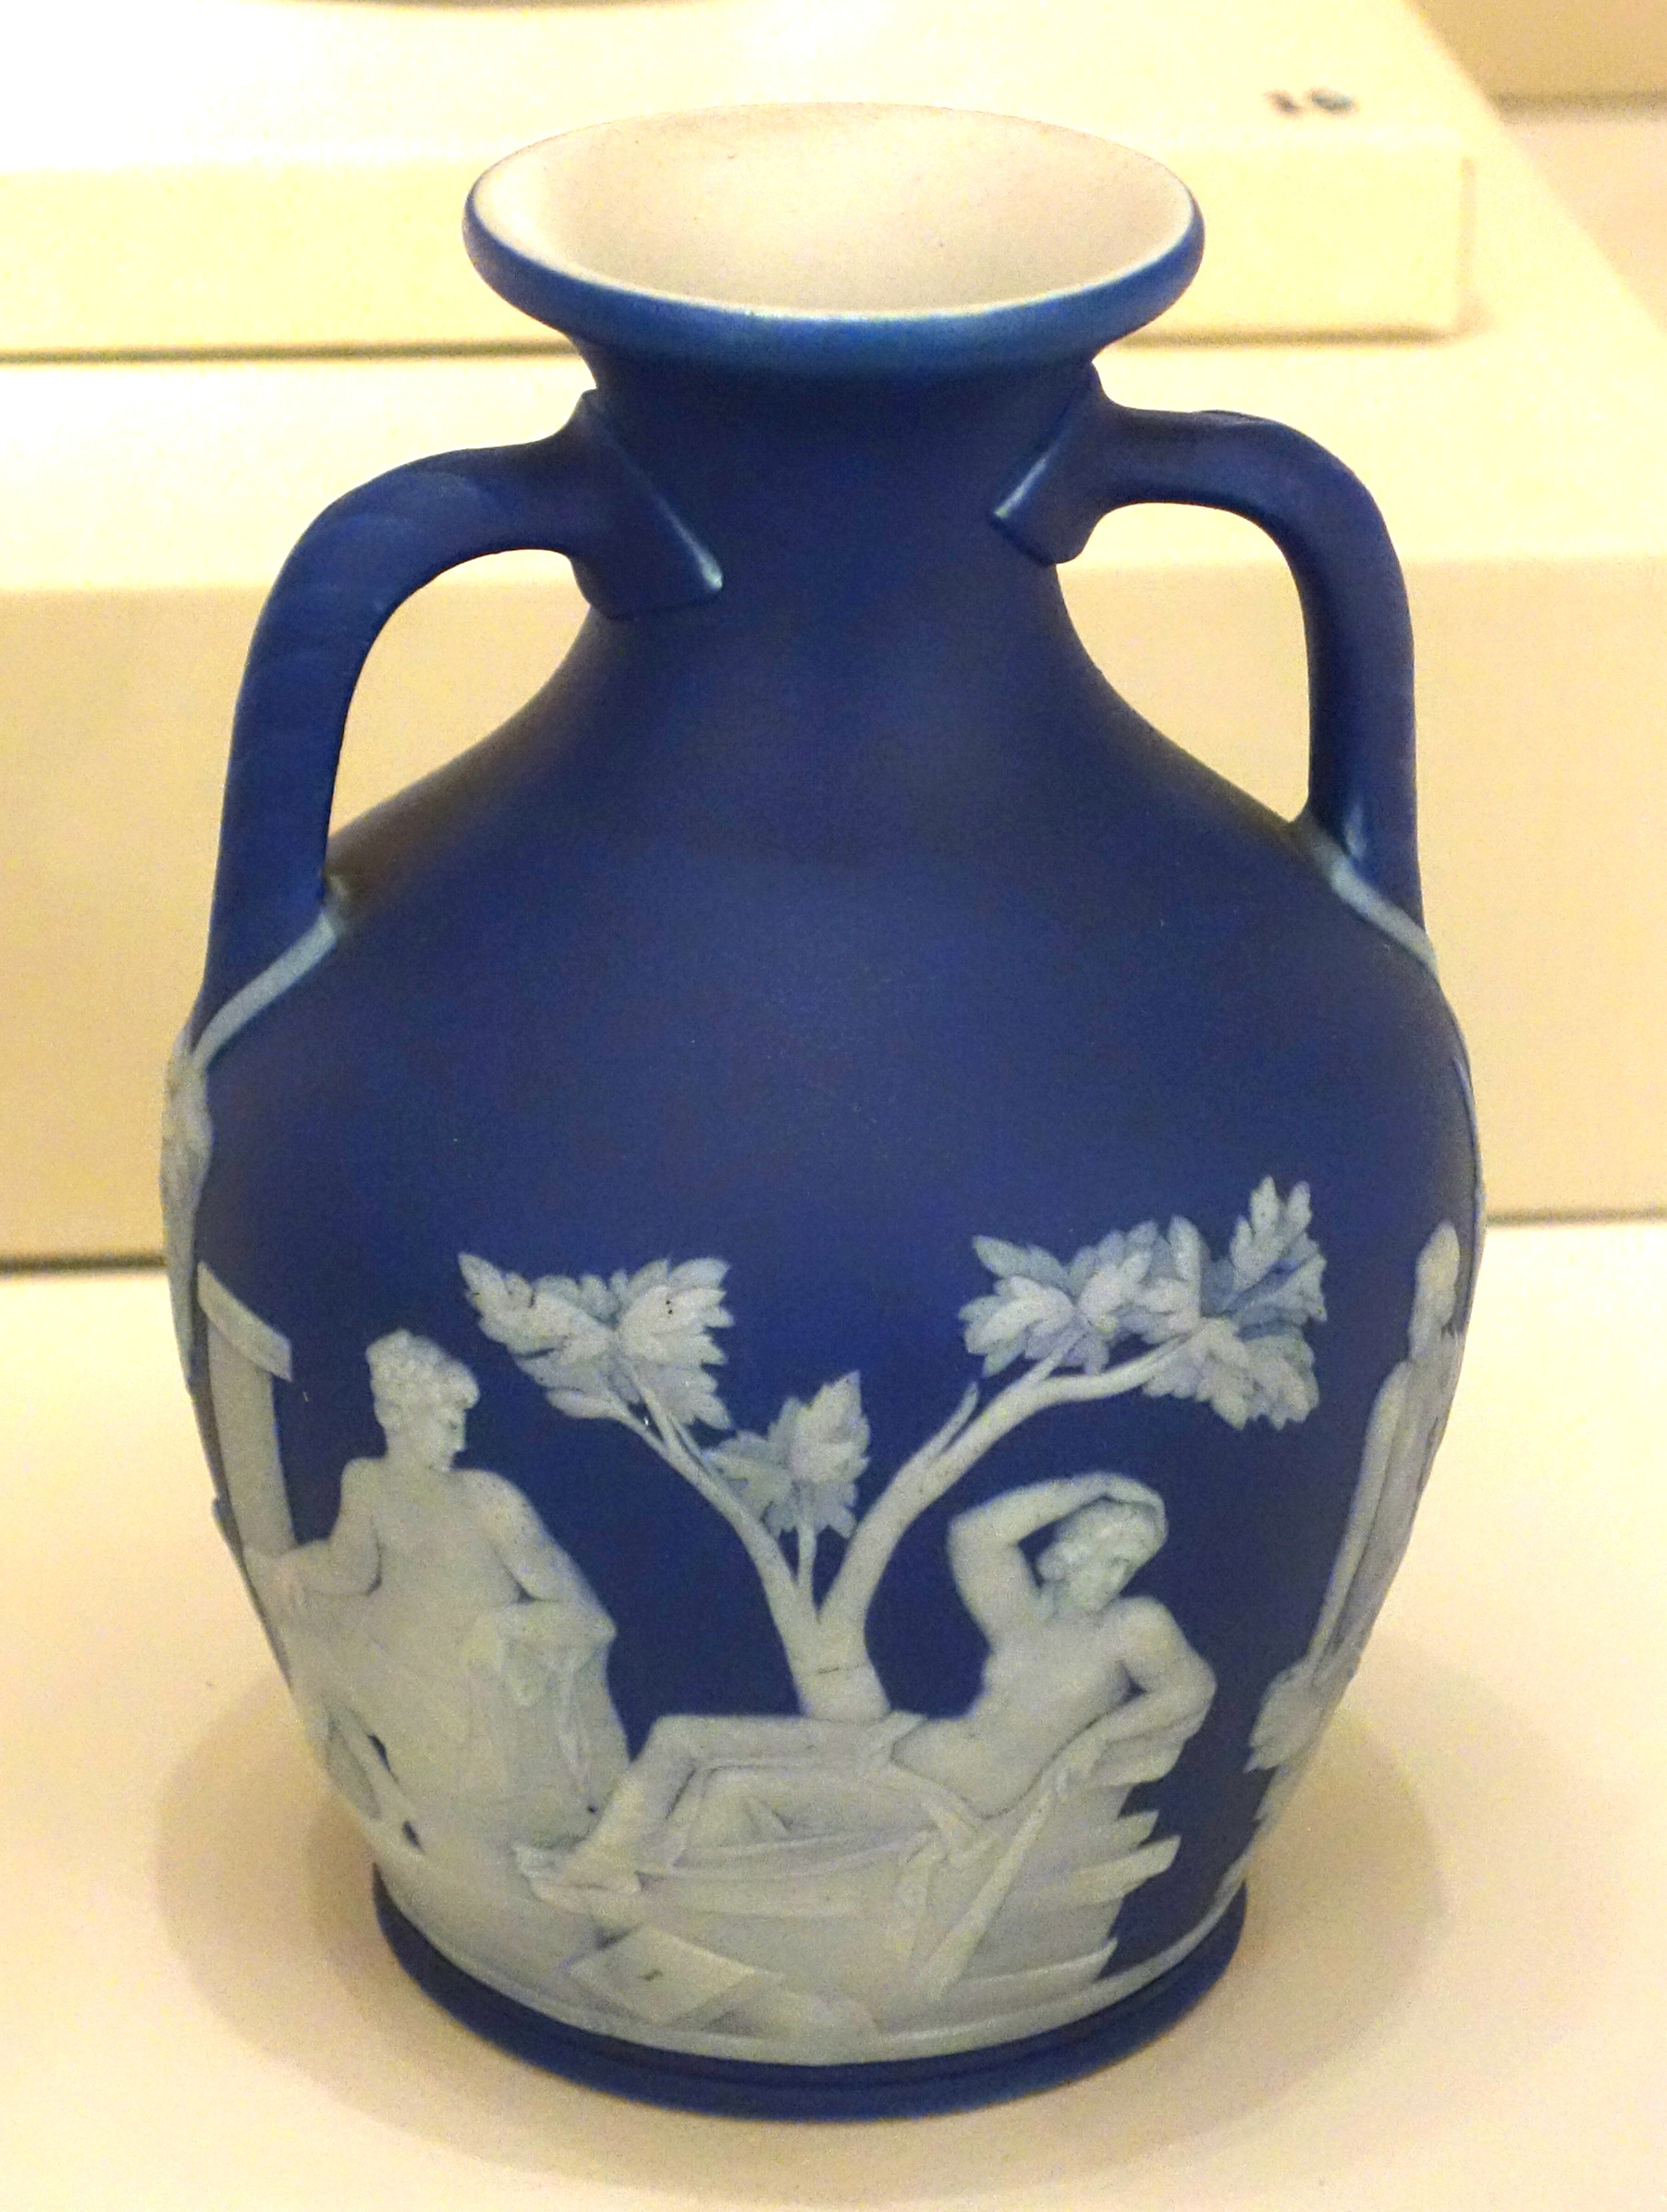 Fileportland vase replica josiah wedgwood and sons c 1880 fileportland vase replica josiah wedgwood and sons c 1880 blue reviewsmspy